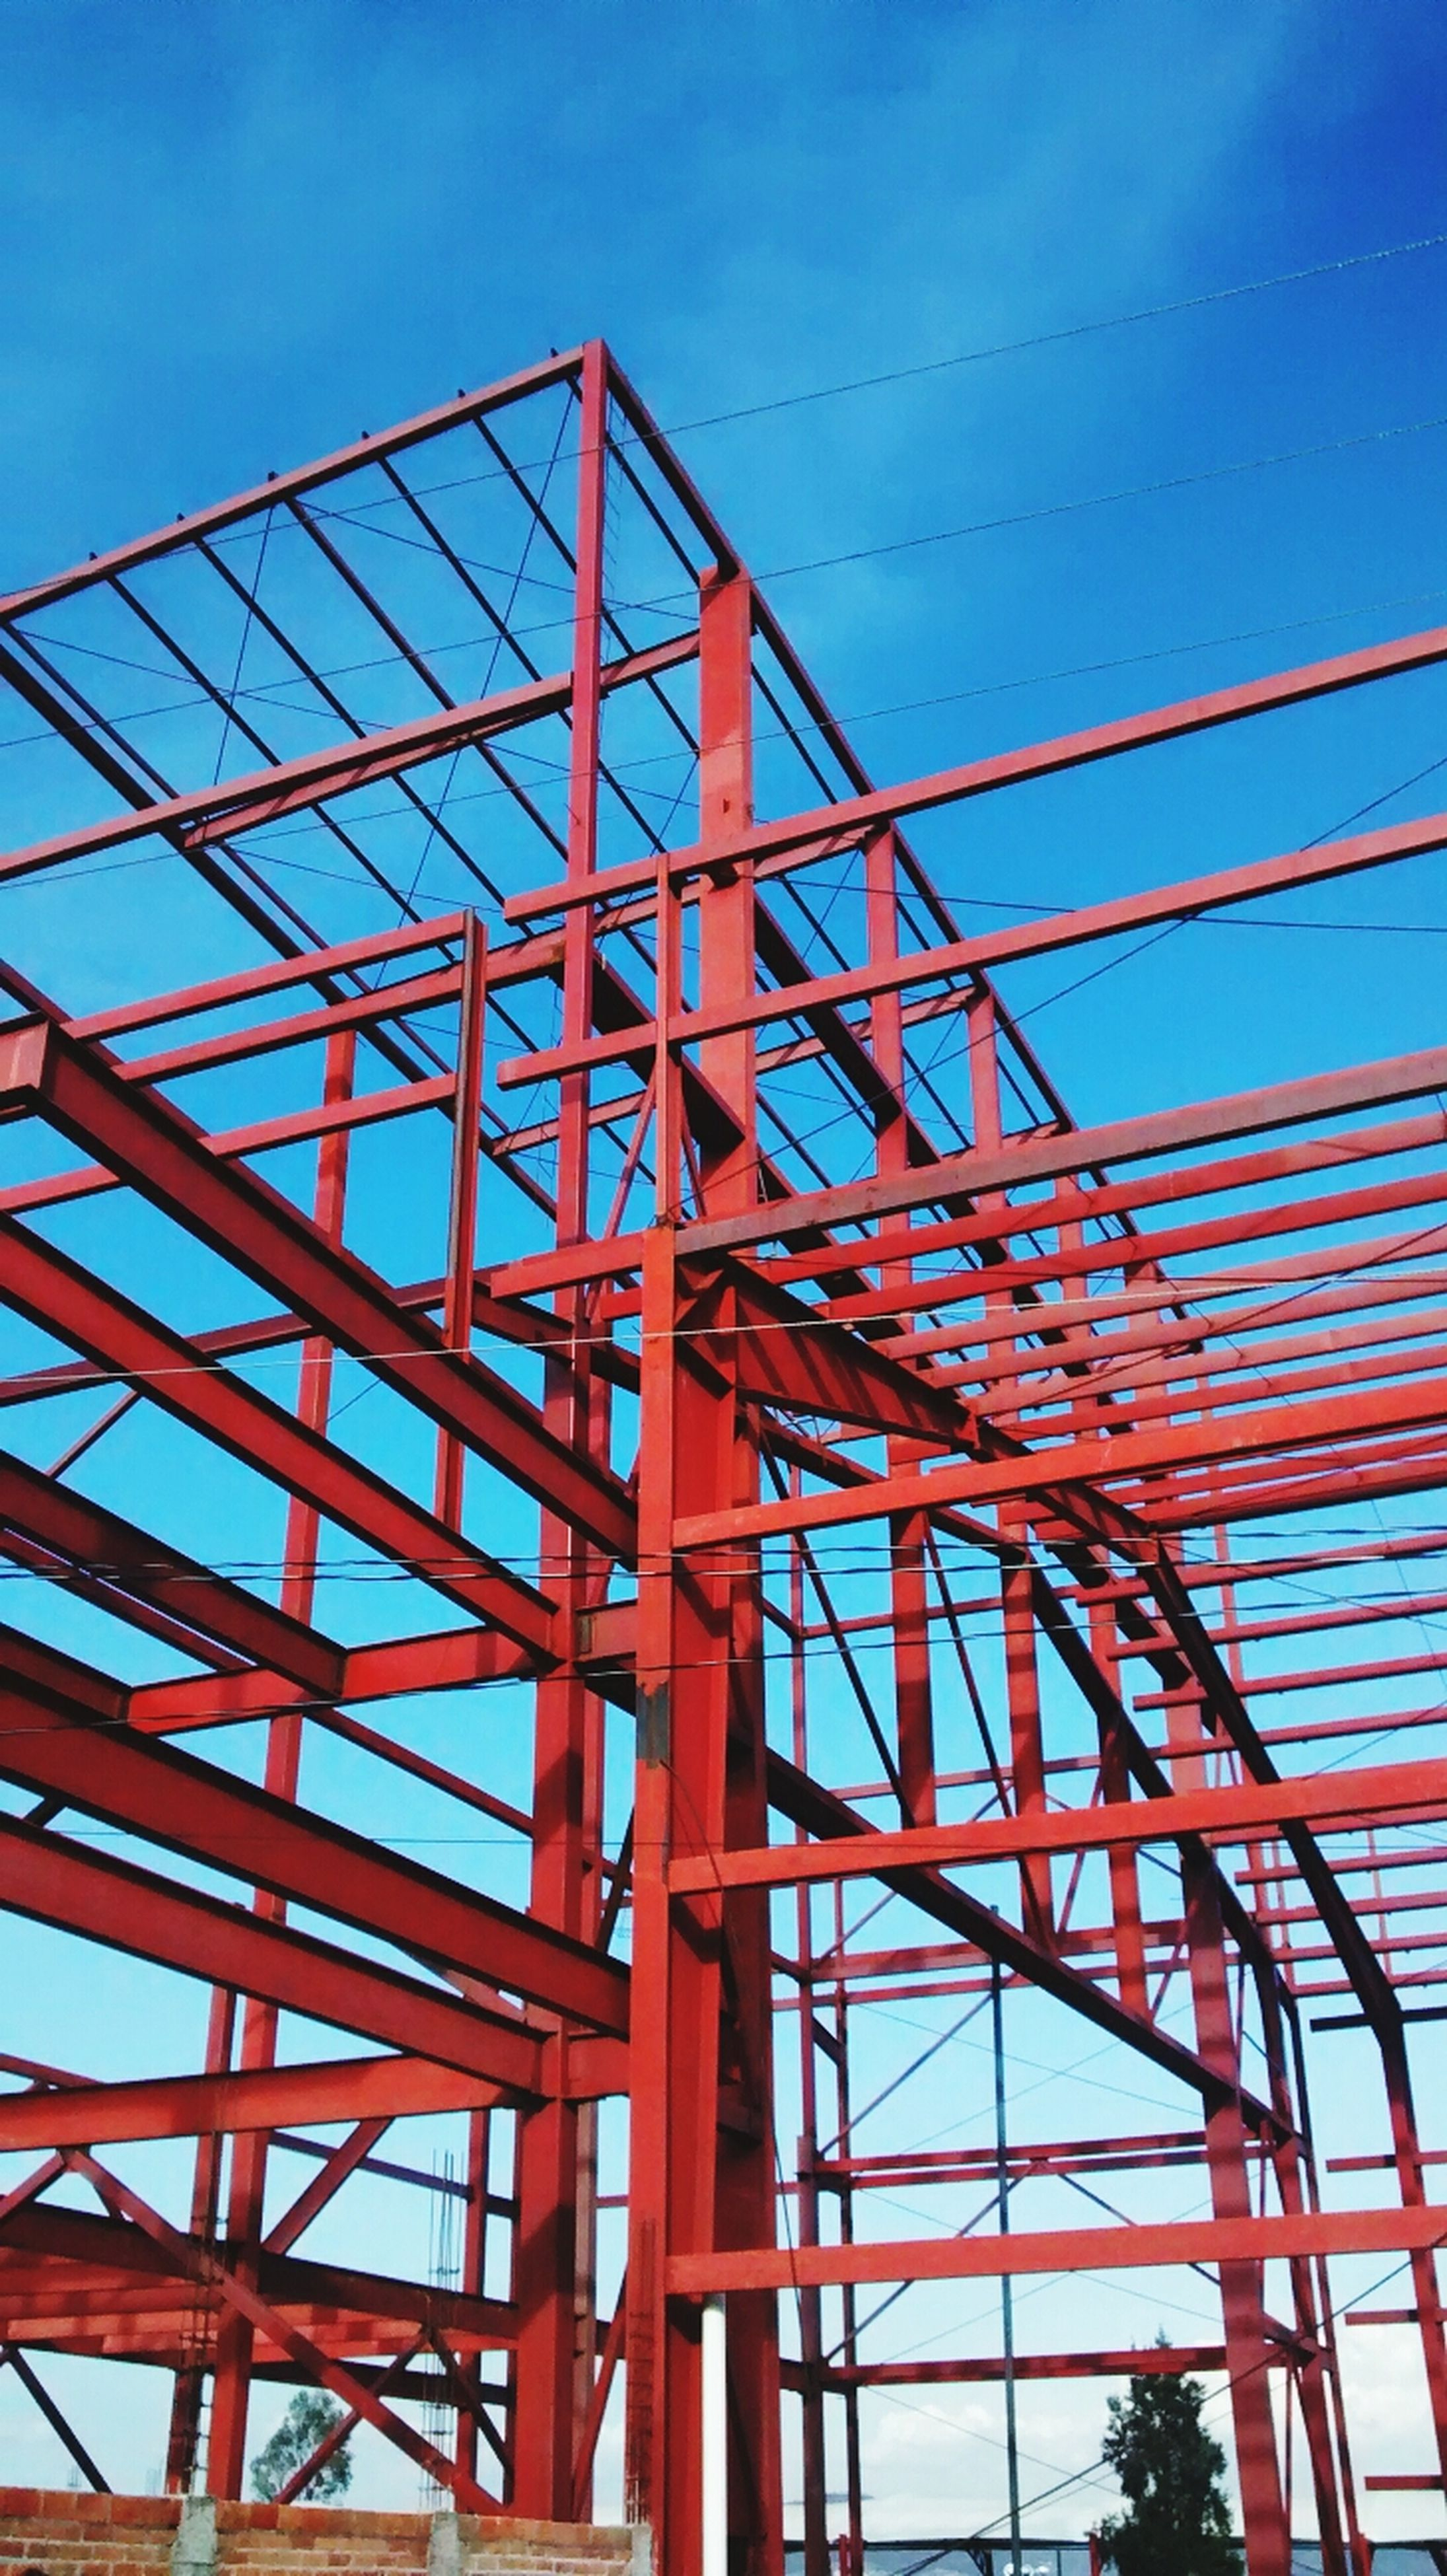 low angle view, built structure, blue, architecture, metal, connection, sky, clear sky, metallic, red, engineering, outdoors, no people, day, bridge - man made structure, sunlight, electricity pylon, structure, grid, transportation